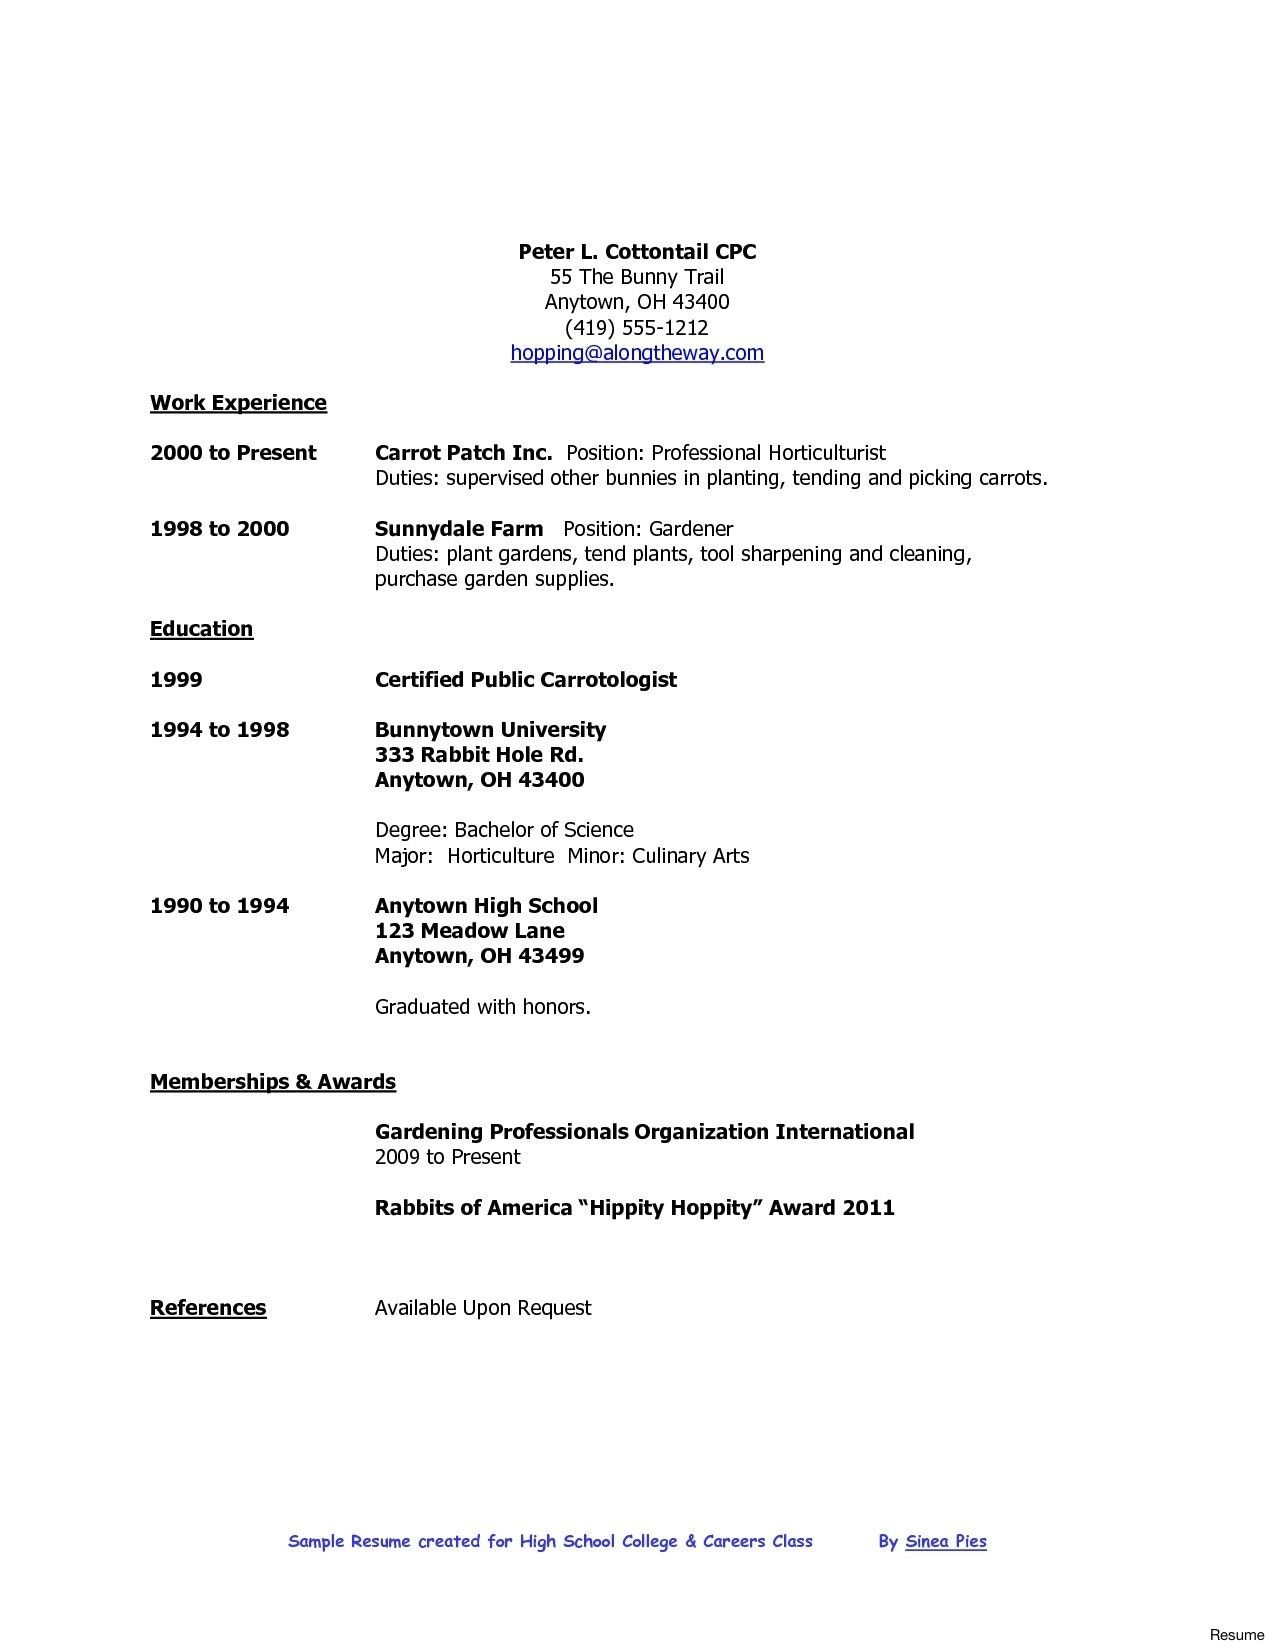 resume format high school graduate job samples college template good objective for Resume High School Graduate Job Resume